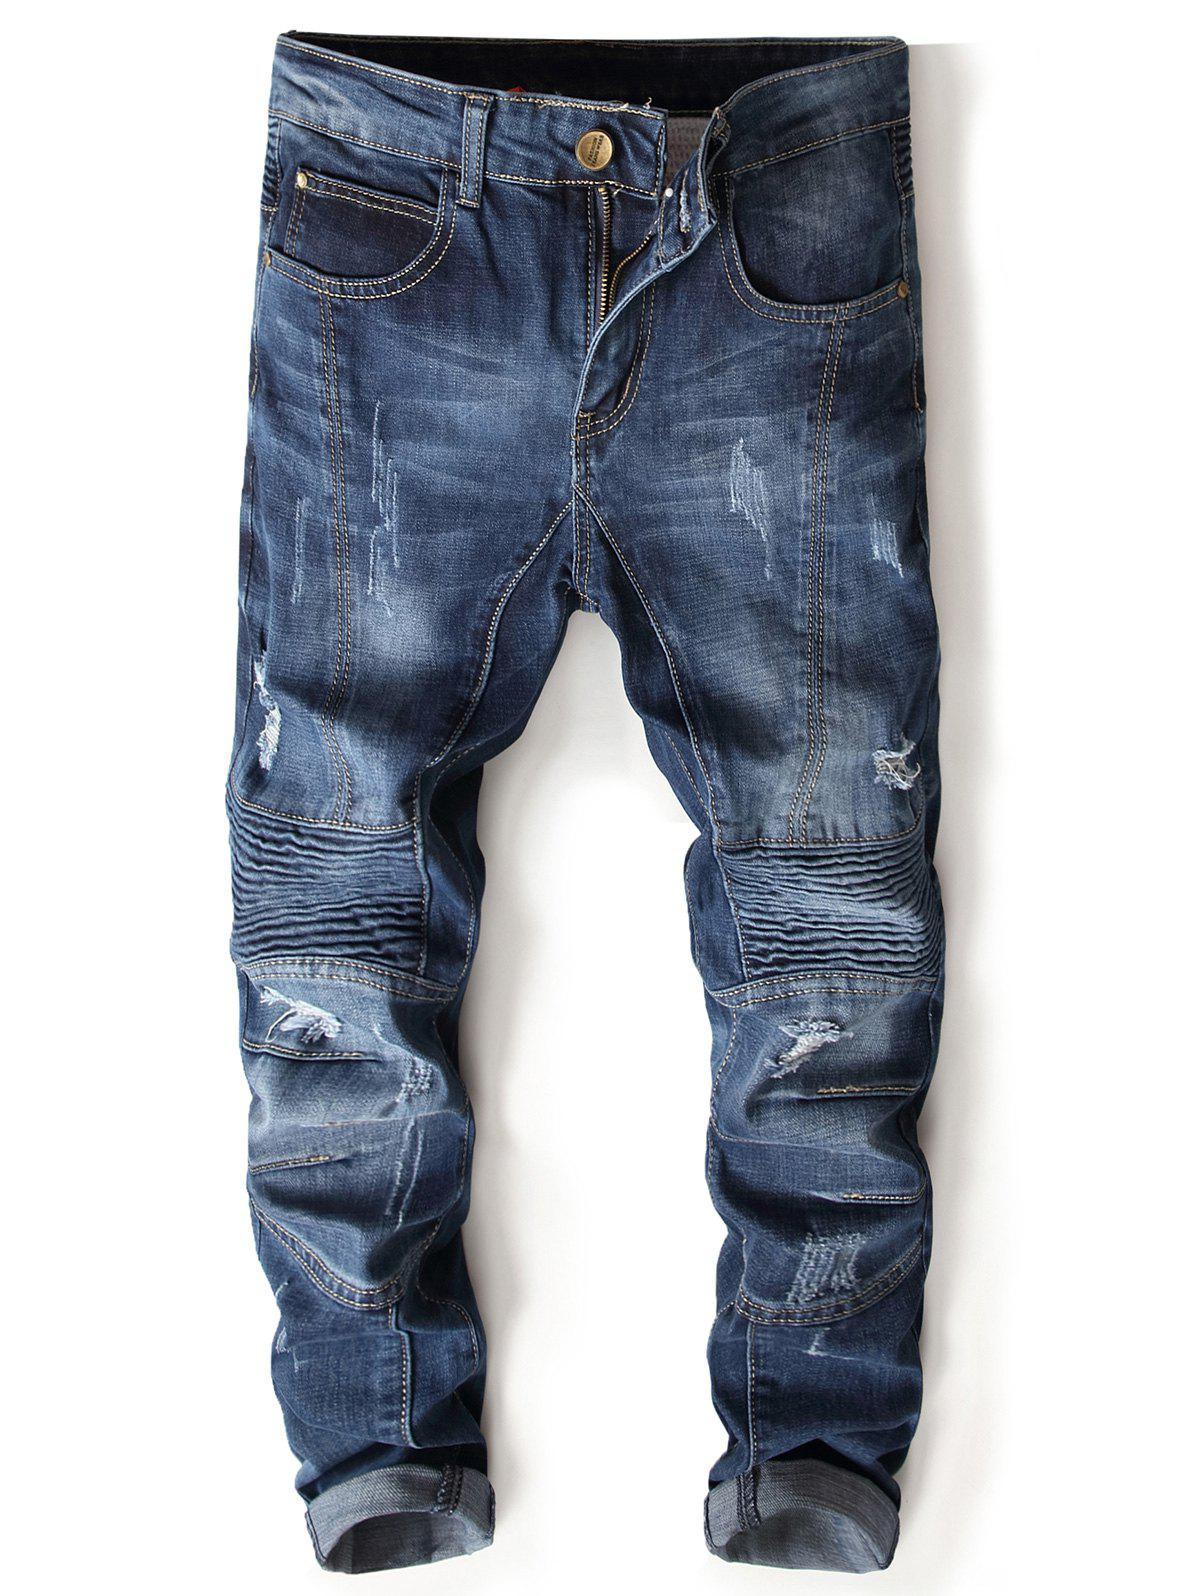 Accordion Pleat Panel Ripped Jeans Men Clothes 231563402